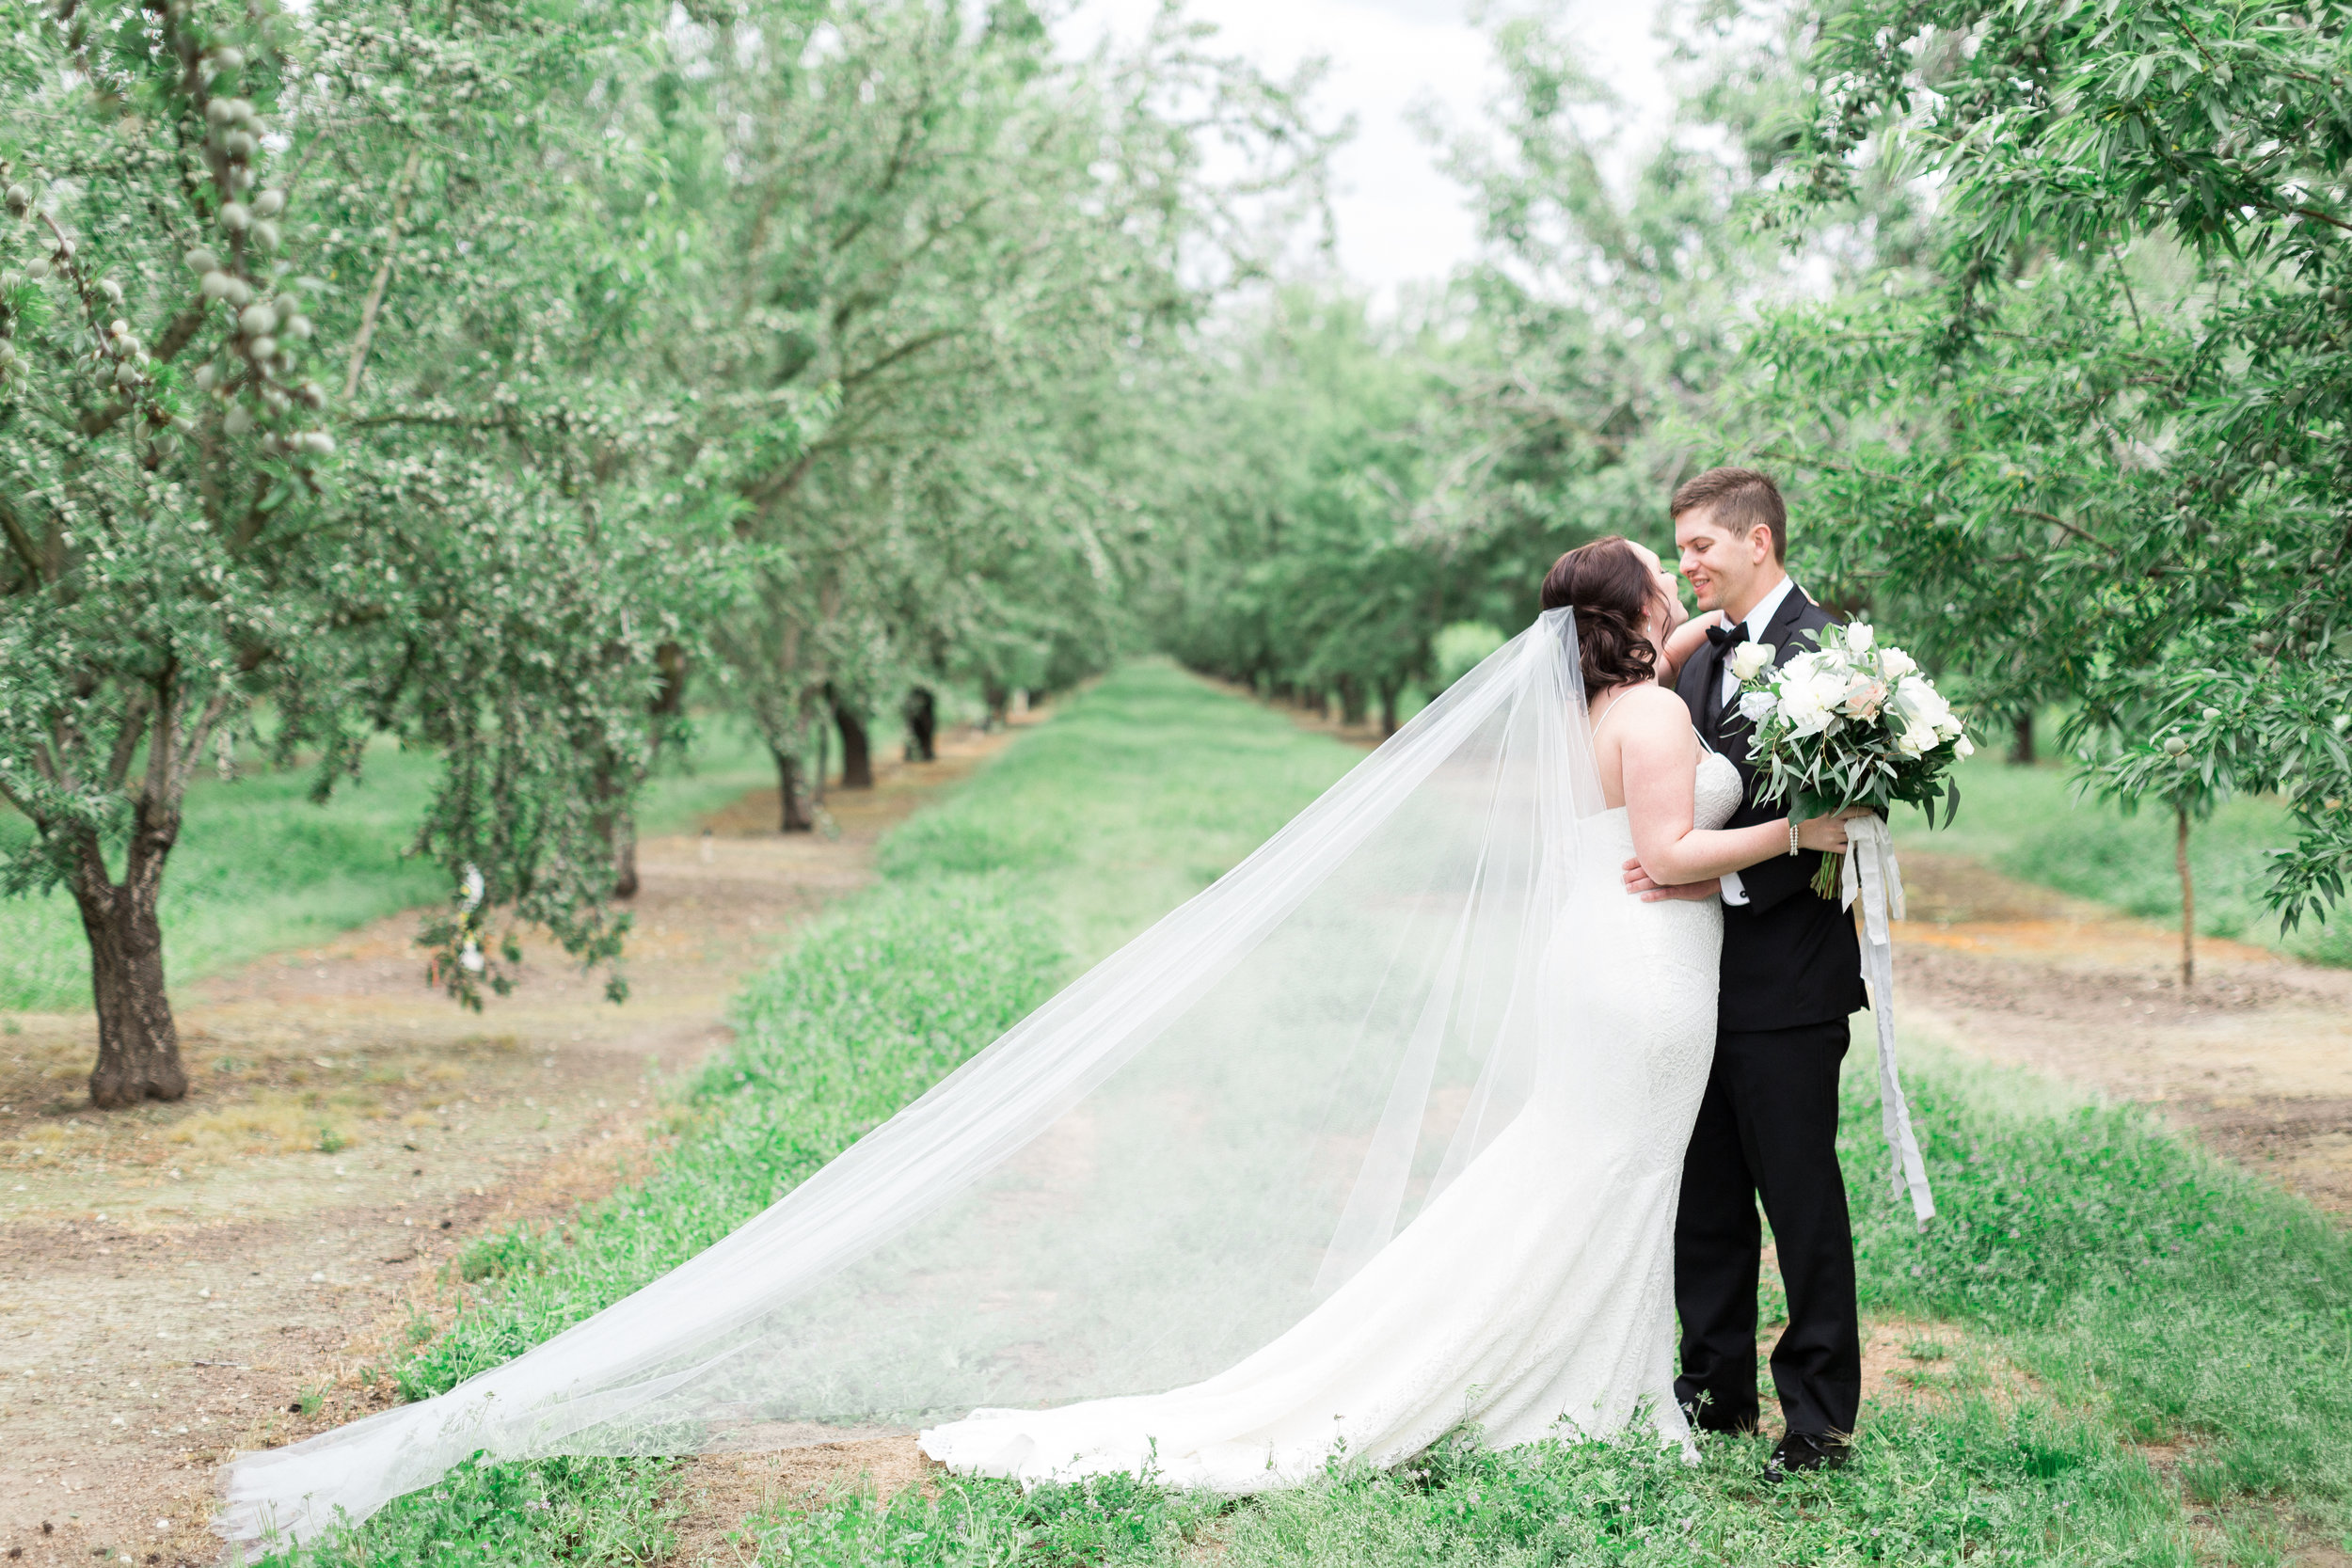 Patrick-Ranch-Wedding-Photos-66.jpg